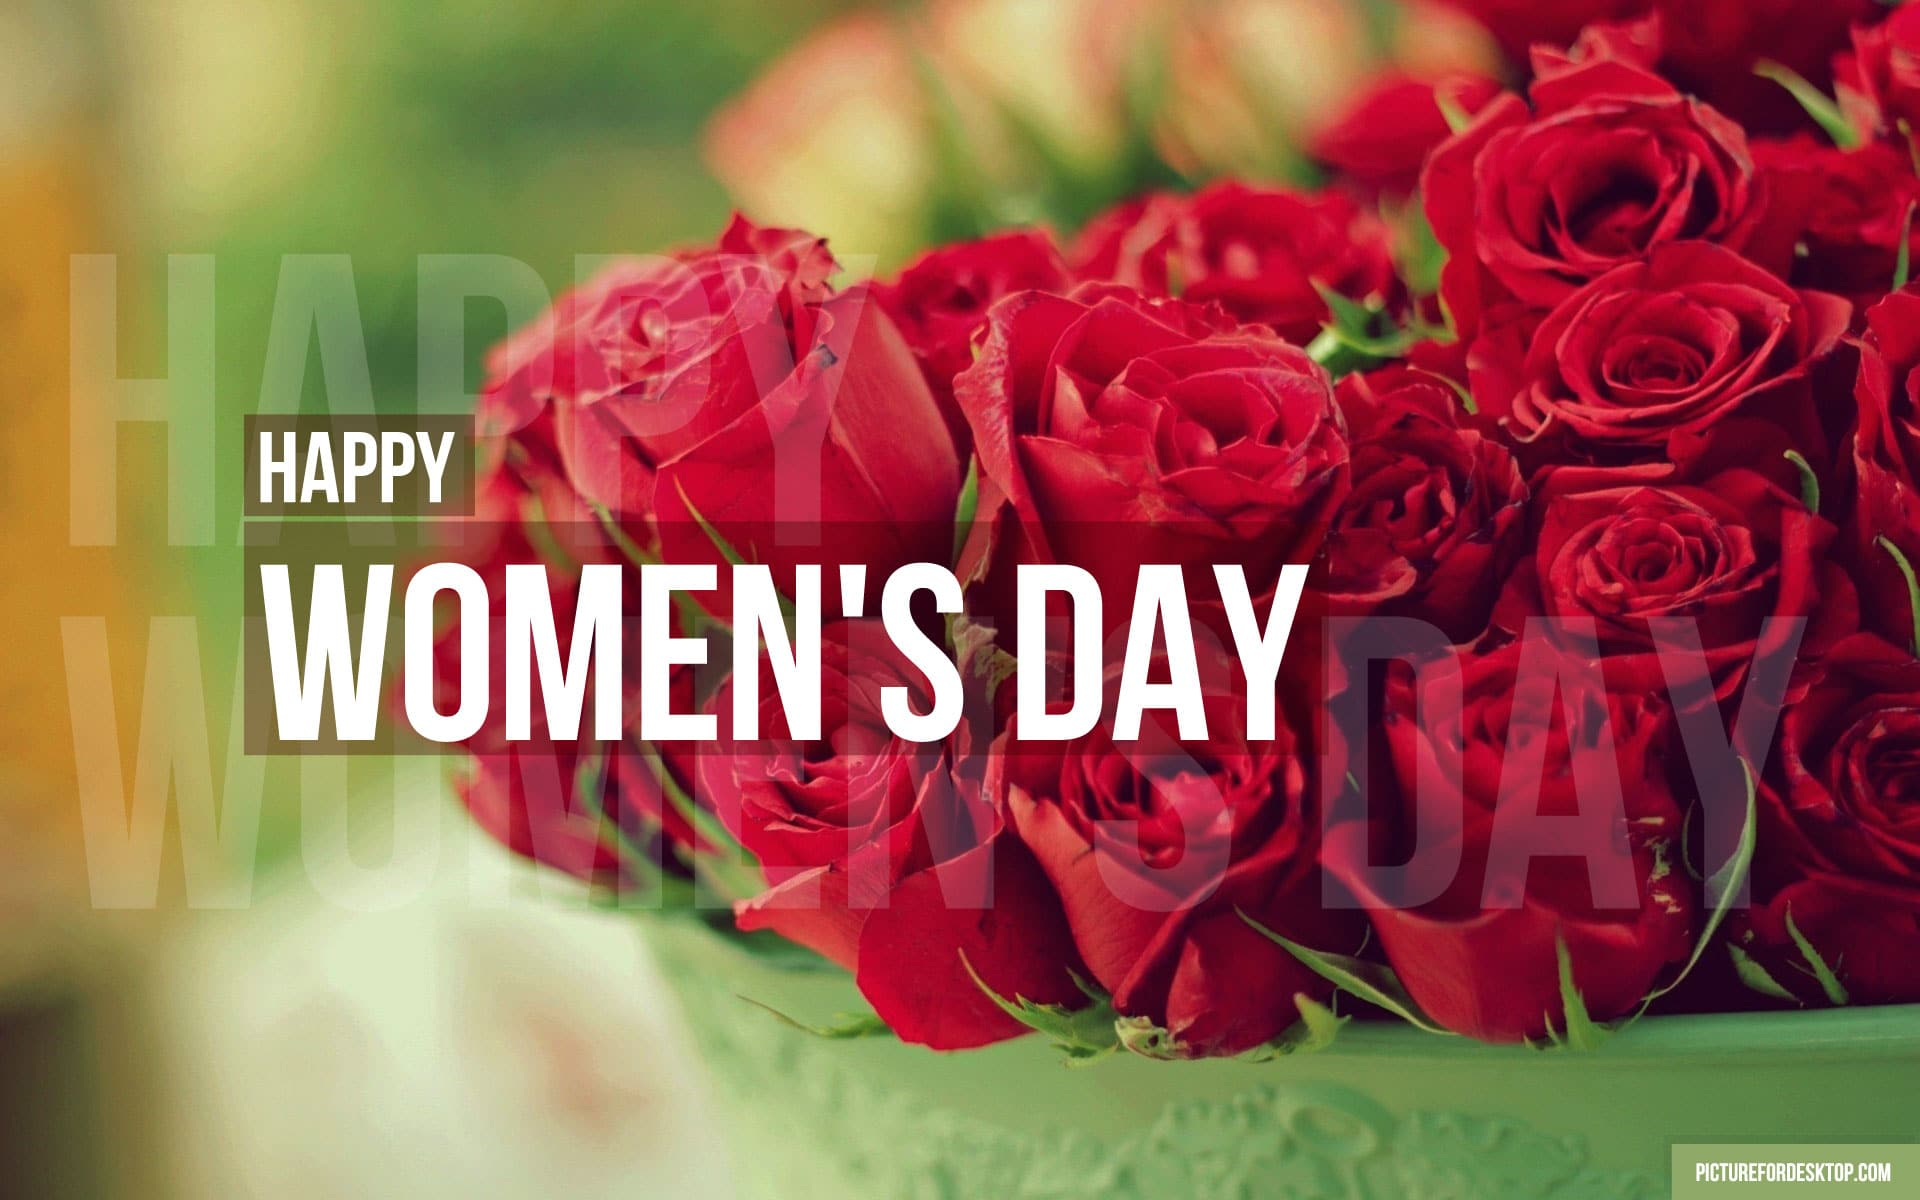 Images for Desktop Wallpapers for Women's Day